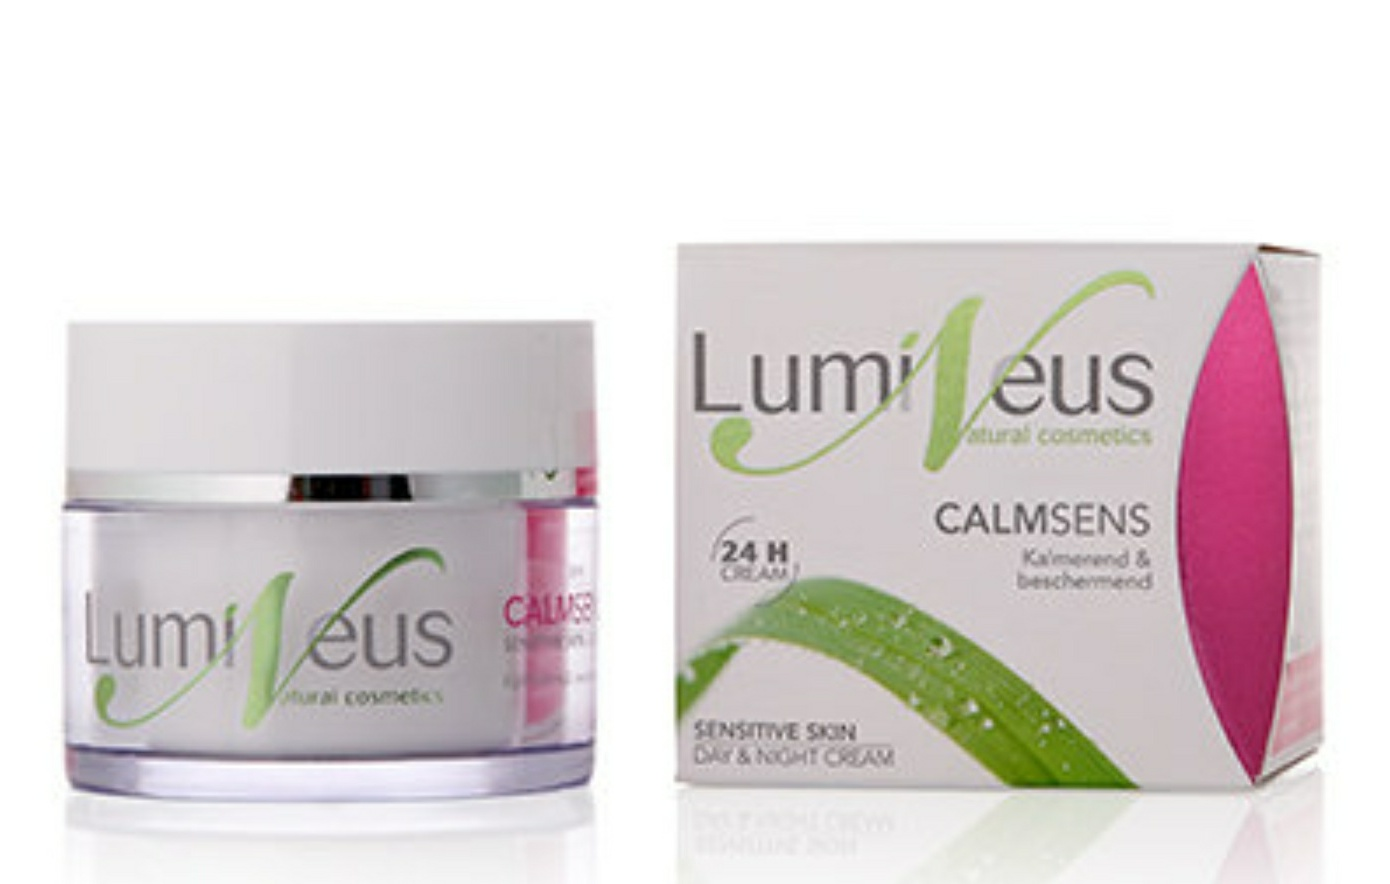 Product image Cream Calmsens – Lumineus Natural Cosmetics